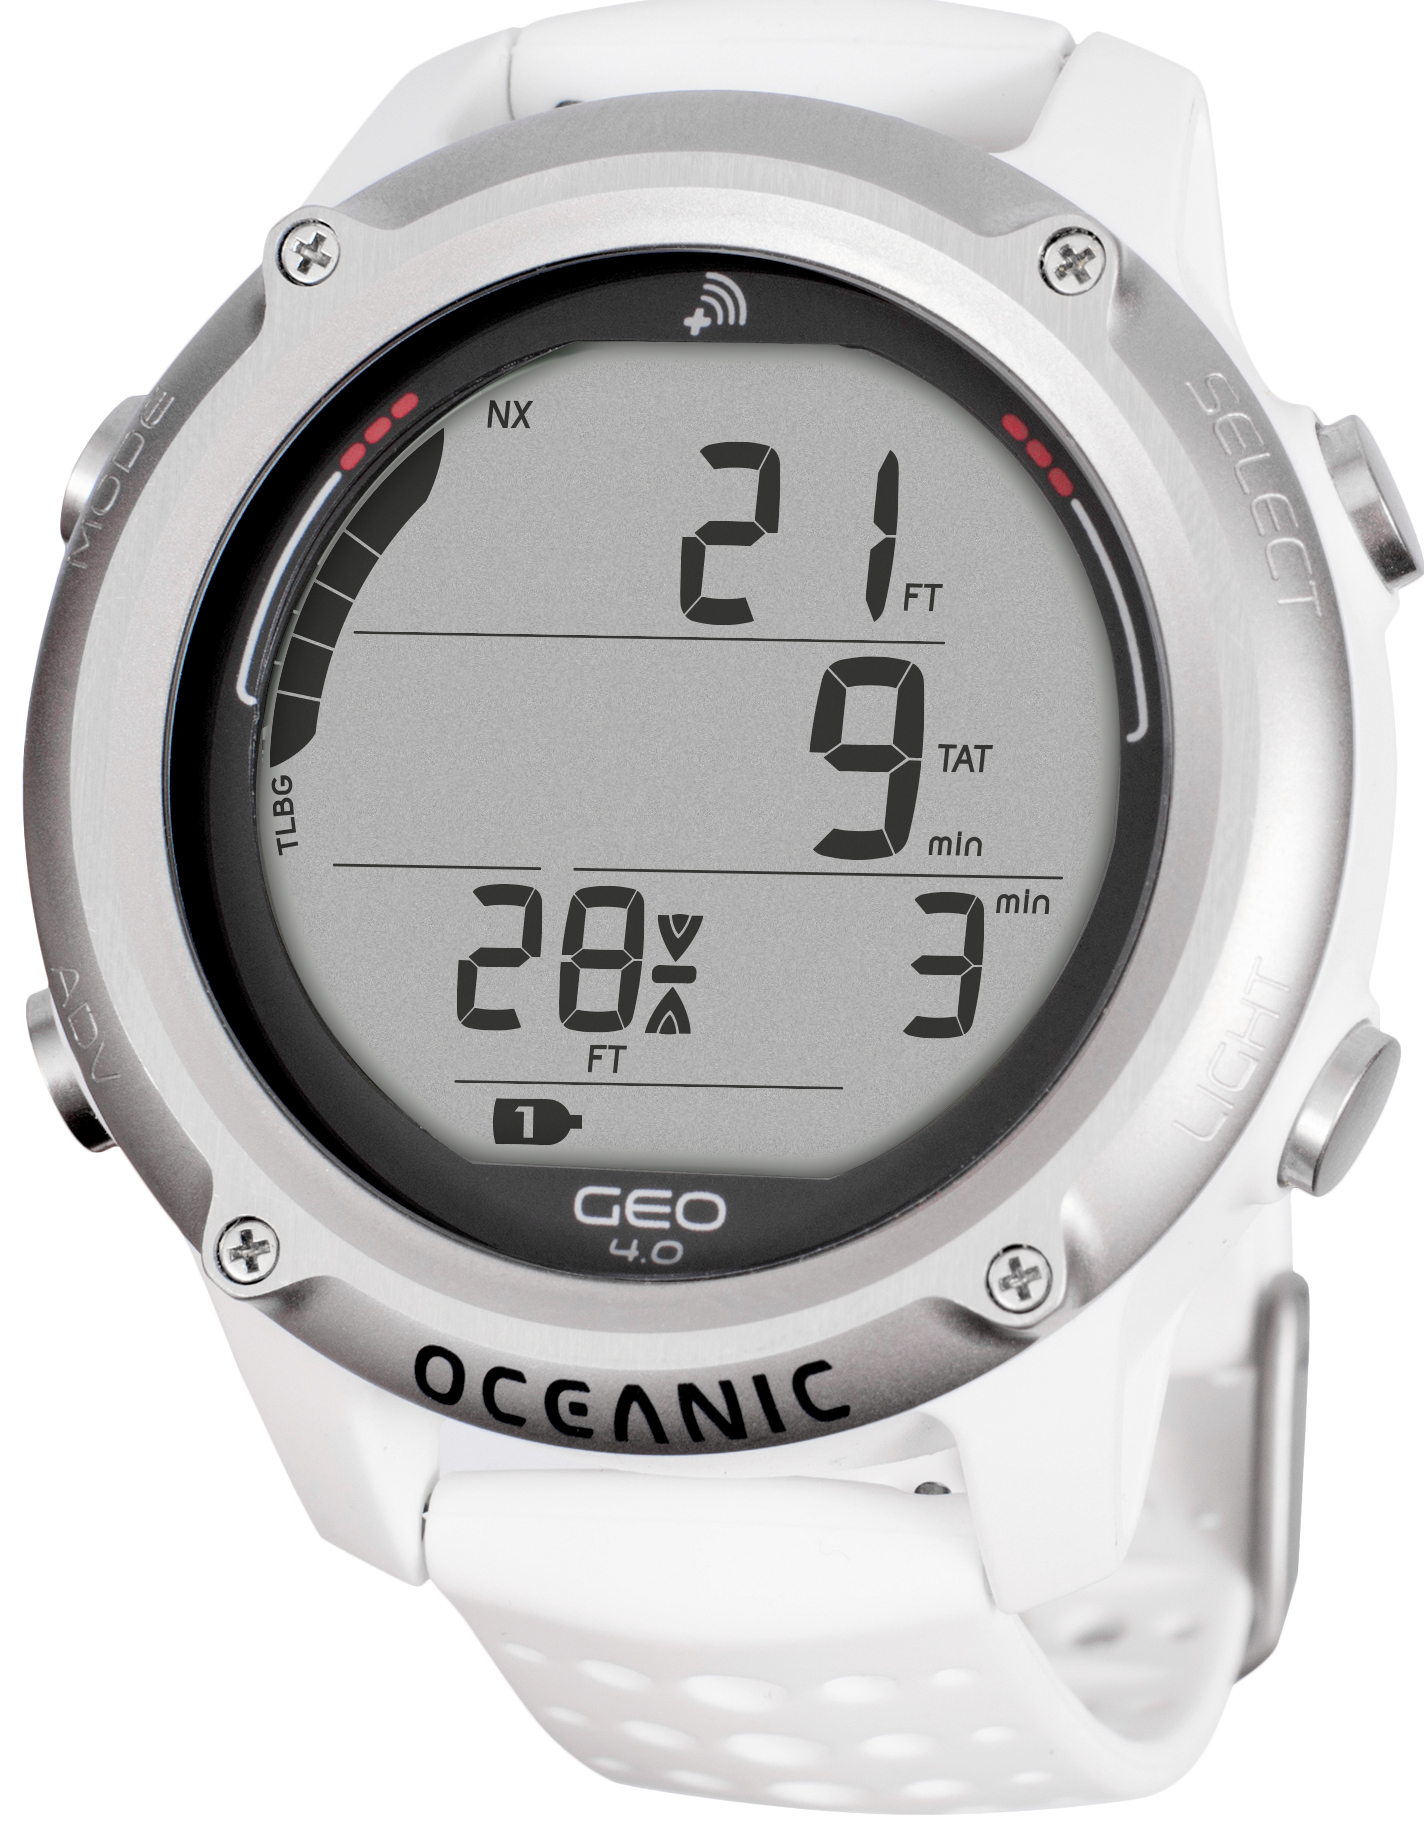 GEO-4.0W-Oceanic-TECNOMAR-DIVING